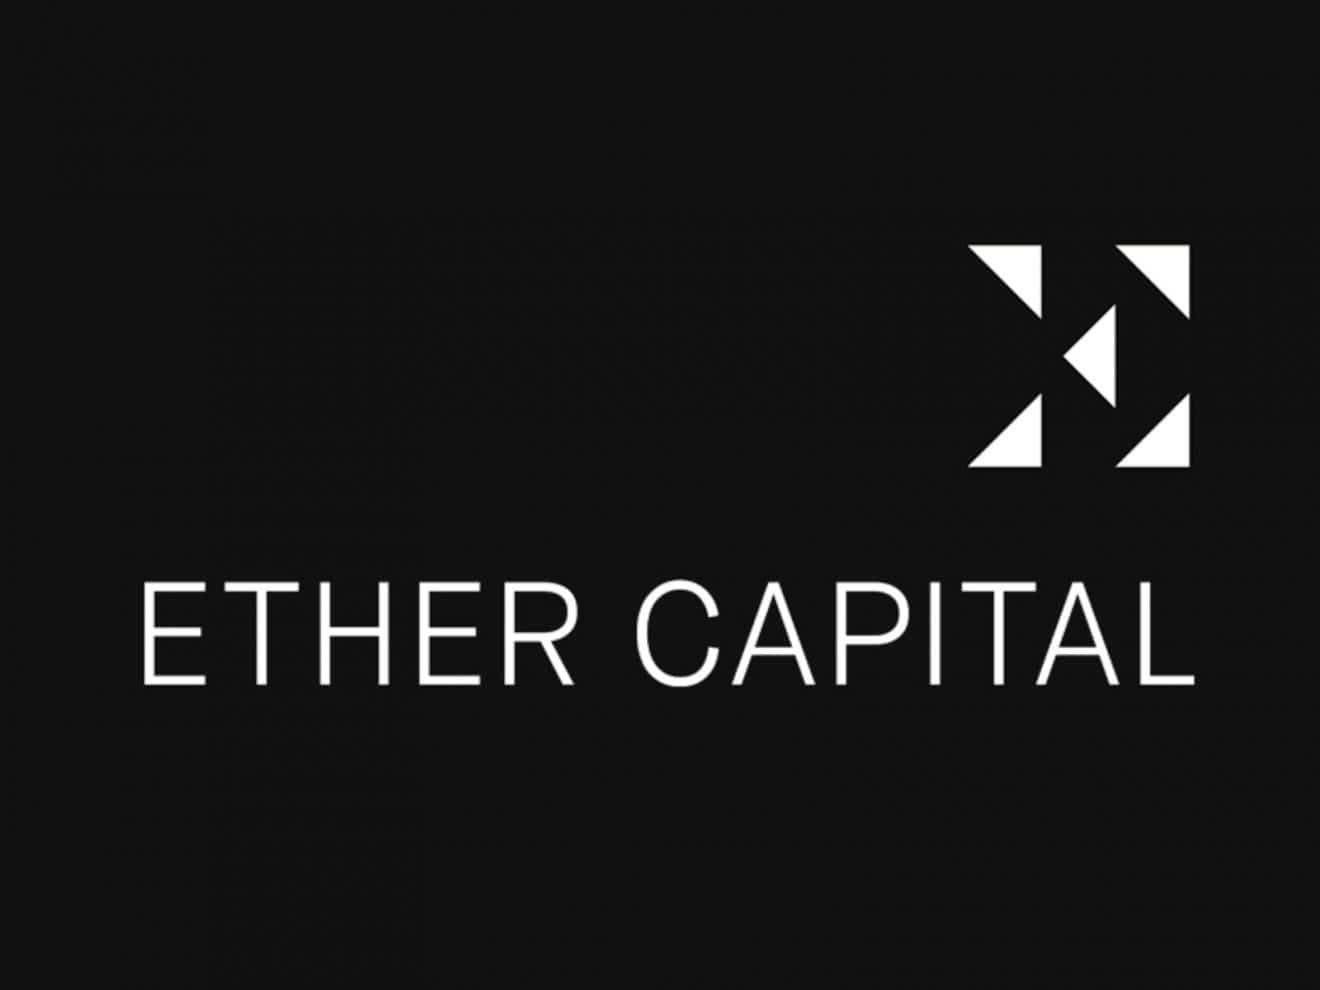 Photo of Seems like the MakerDao (MKR) Project has Multi-Billion Potential according to Ether Capital